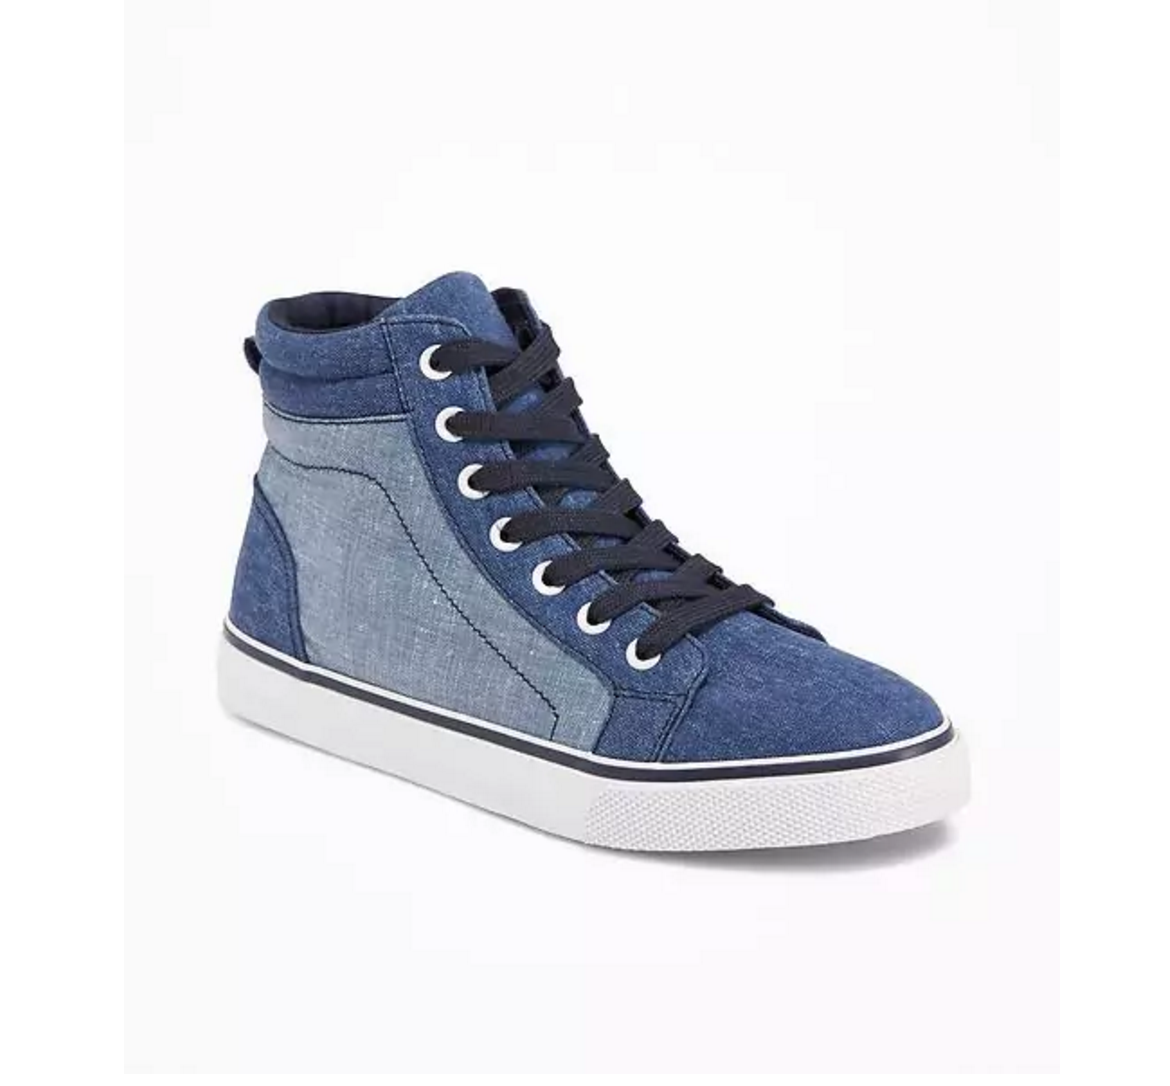 Tanger Outlets Old Navy Outlet boy's chambray high top sneakers